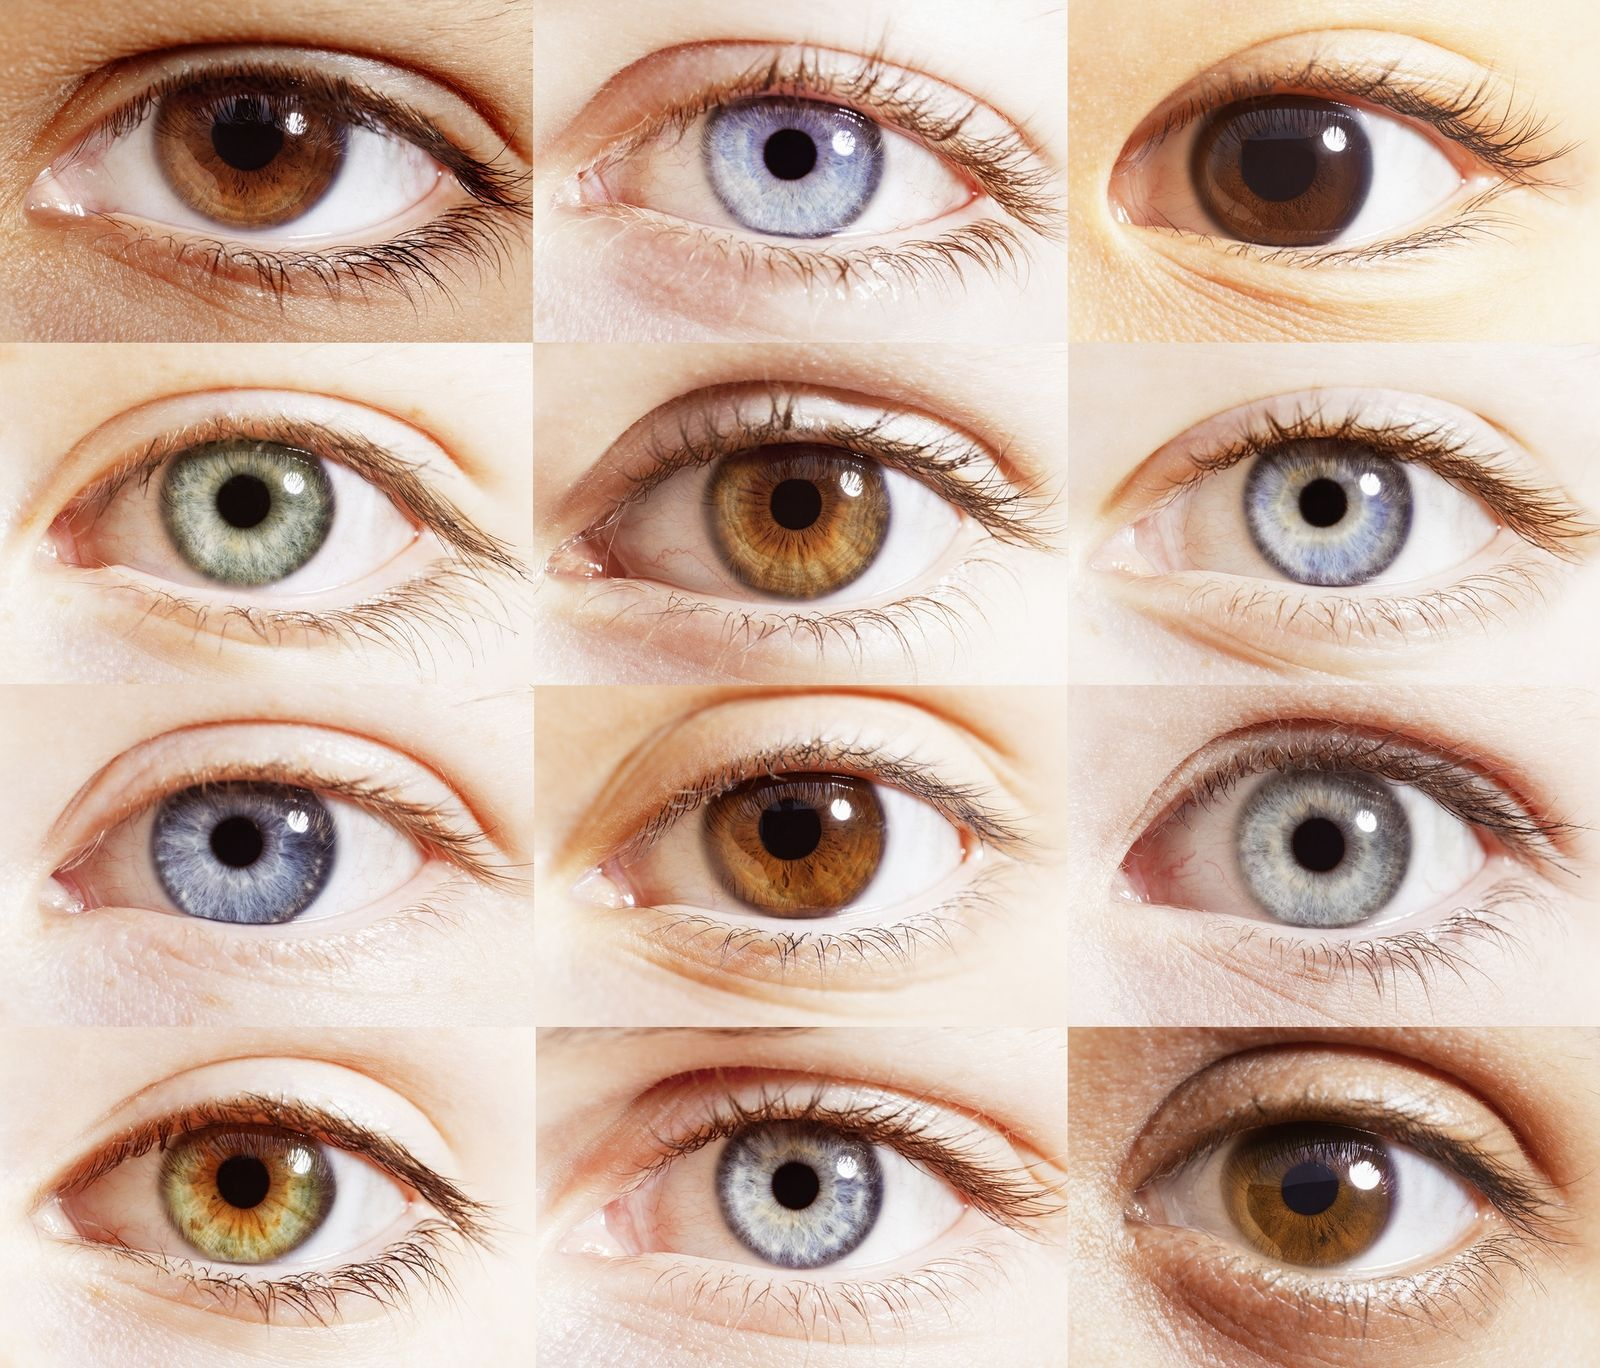 If You Have Blue Eyes They Re Actually Brown And You Just Don T Realise It Eye Color Chart Blue Green Eyes Shades Of Brown Eyes